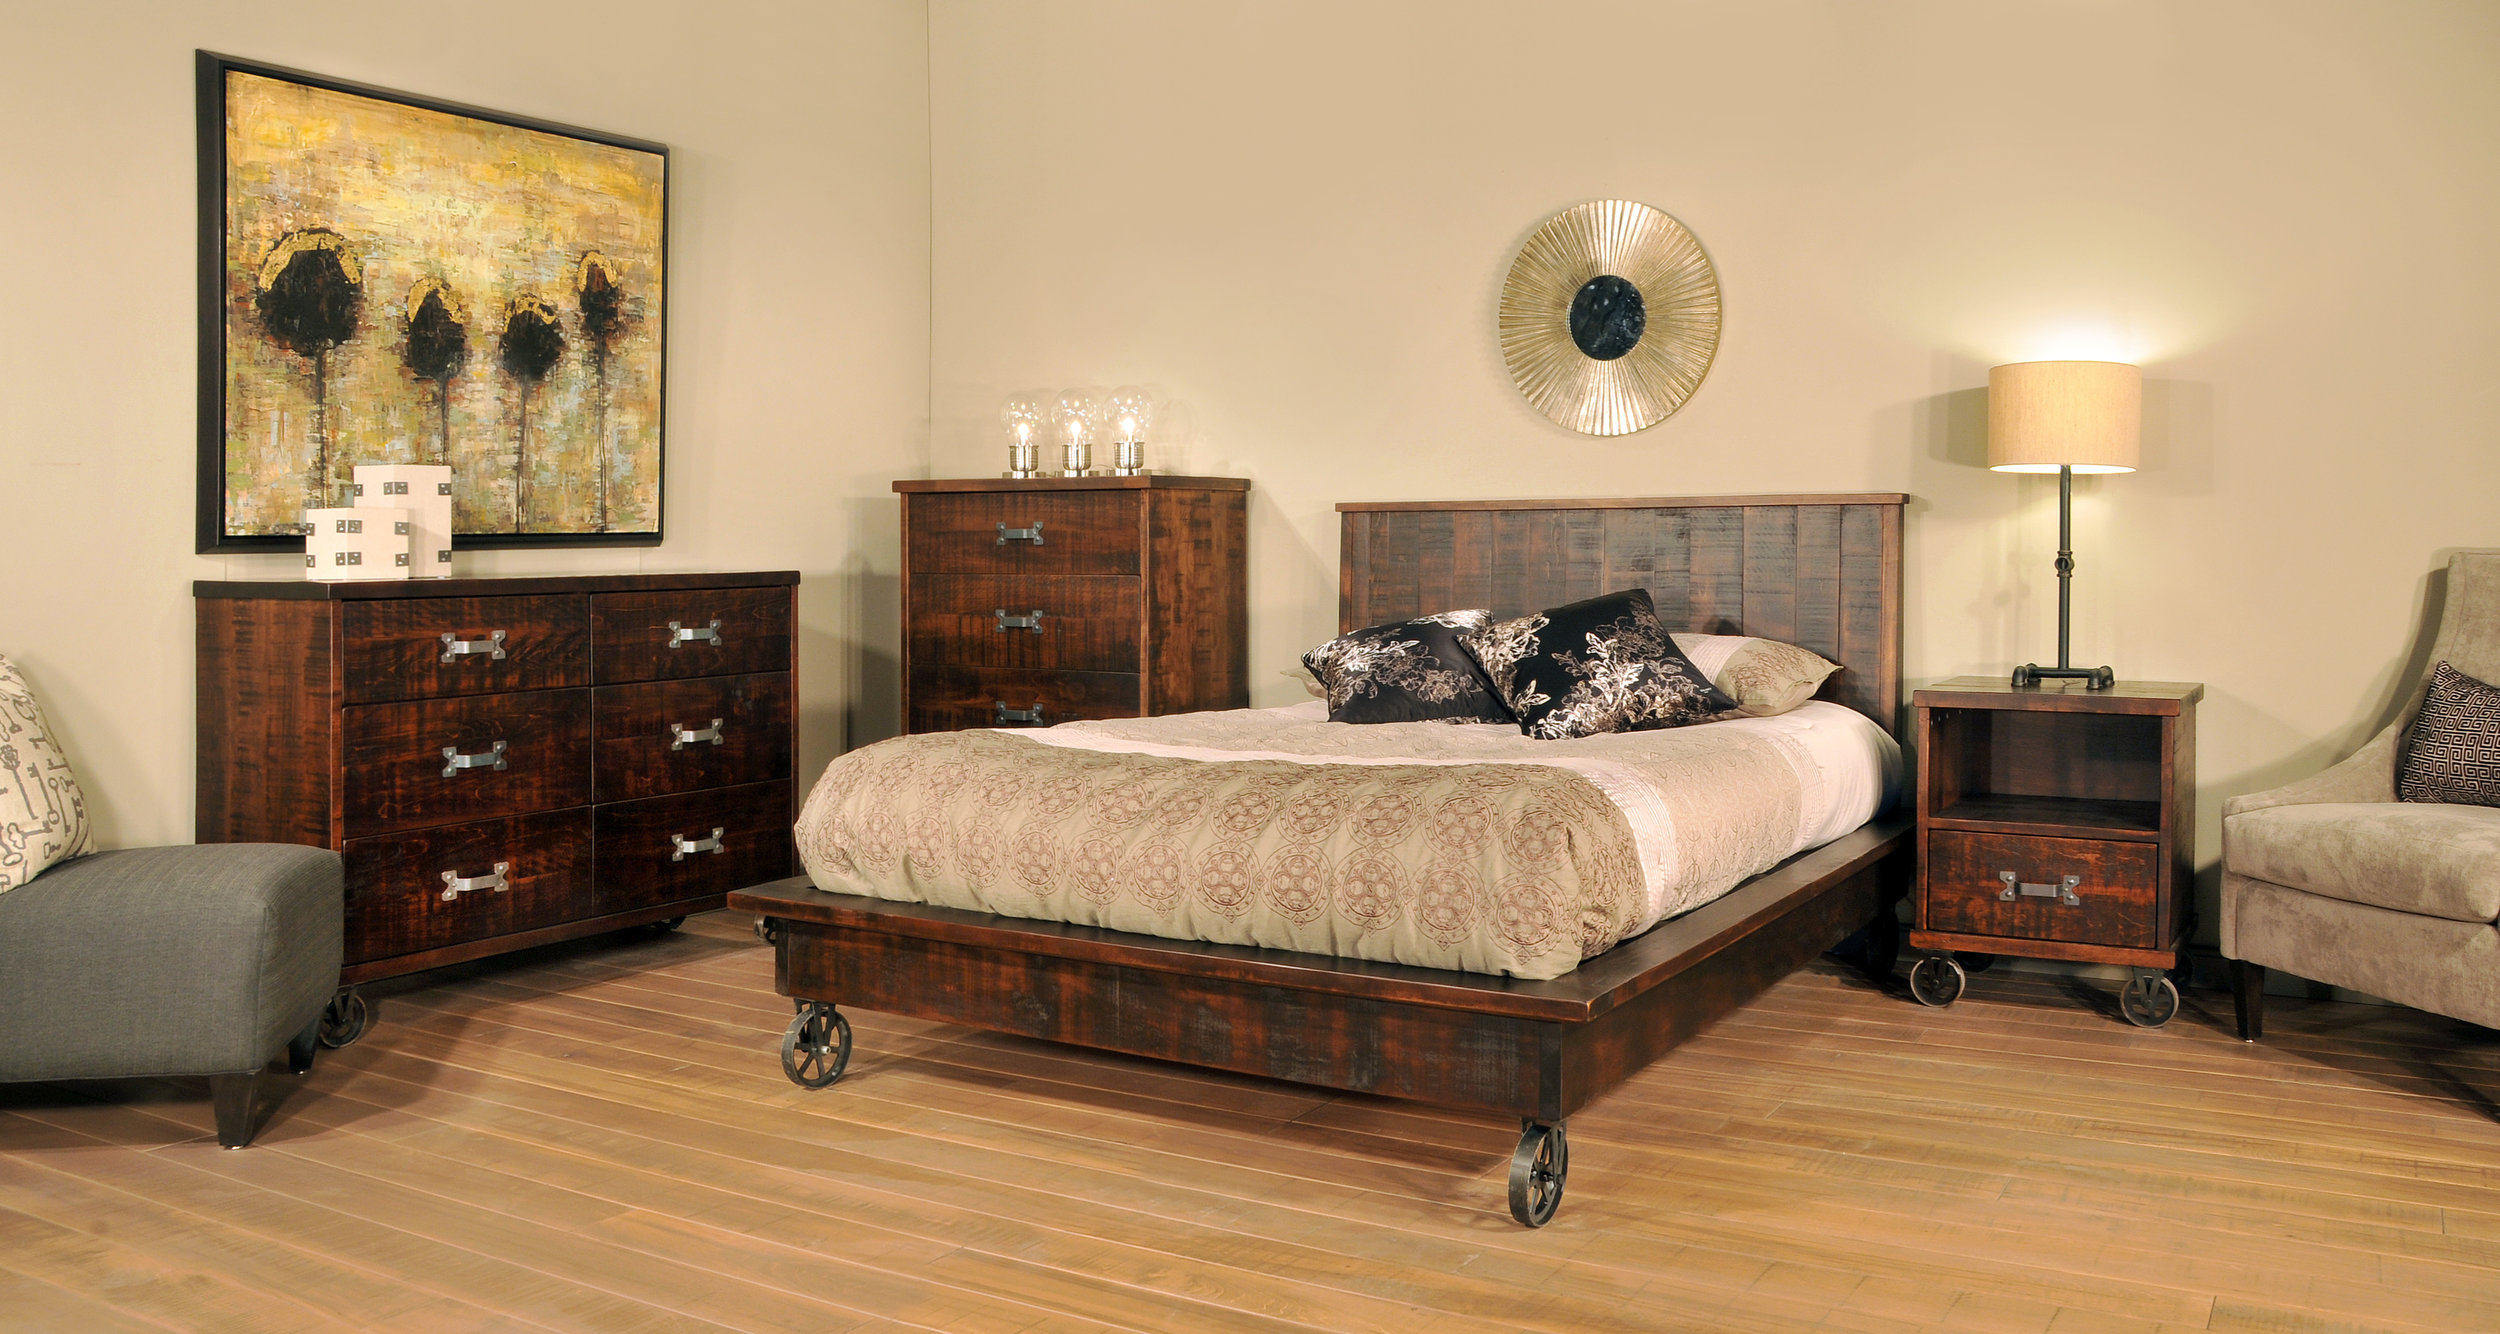 Steam punk bedroom sets for sale in PA